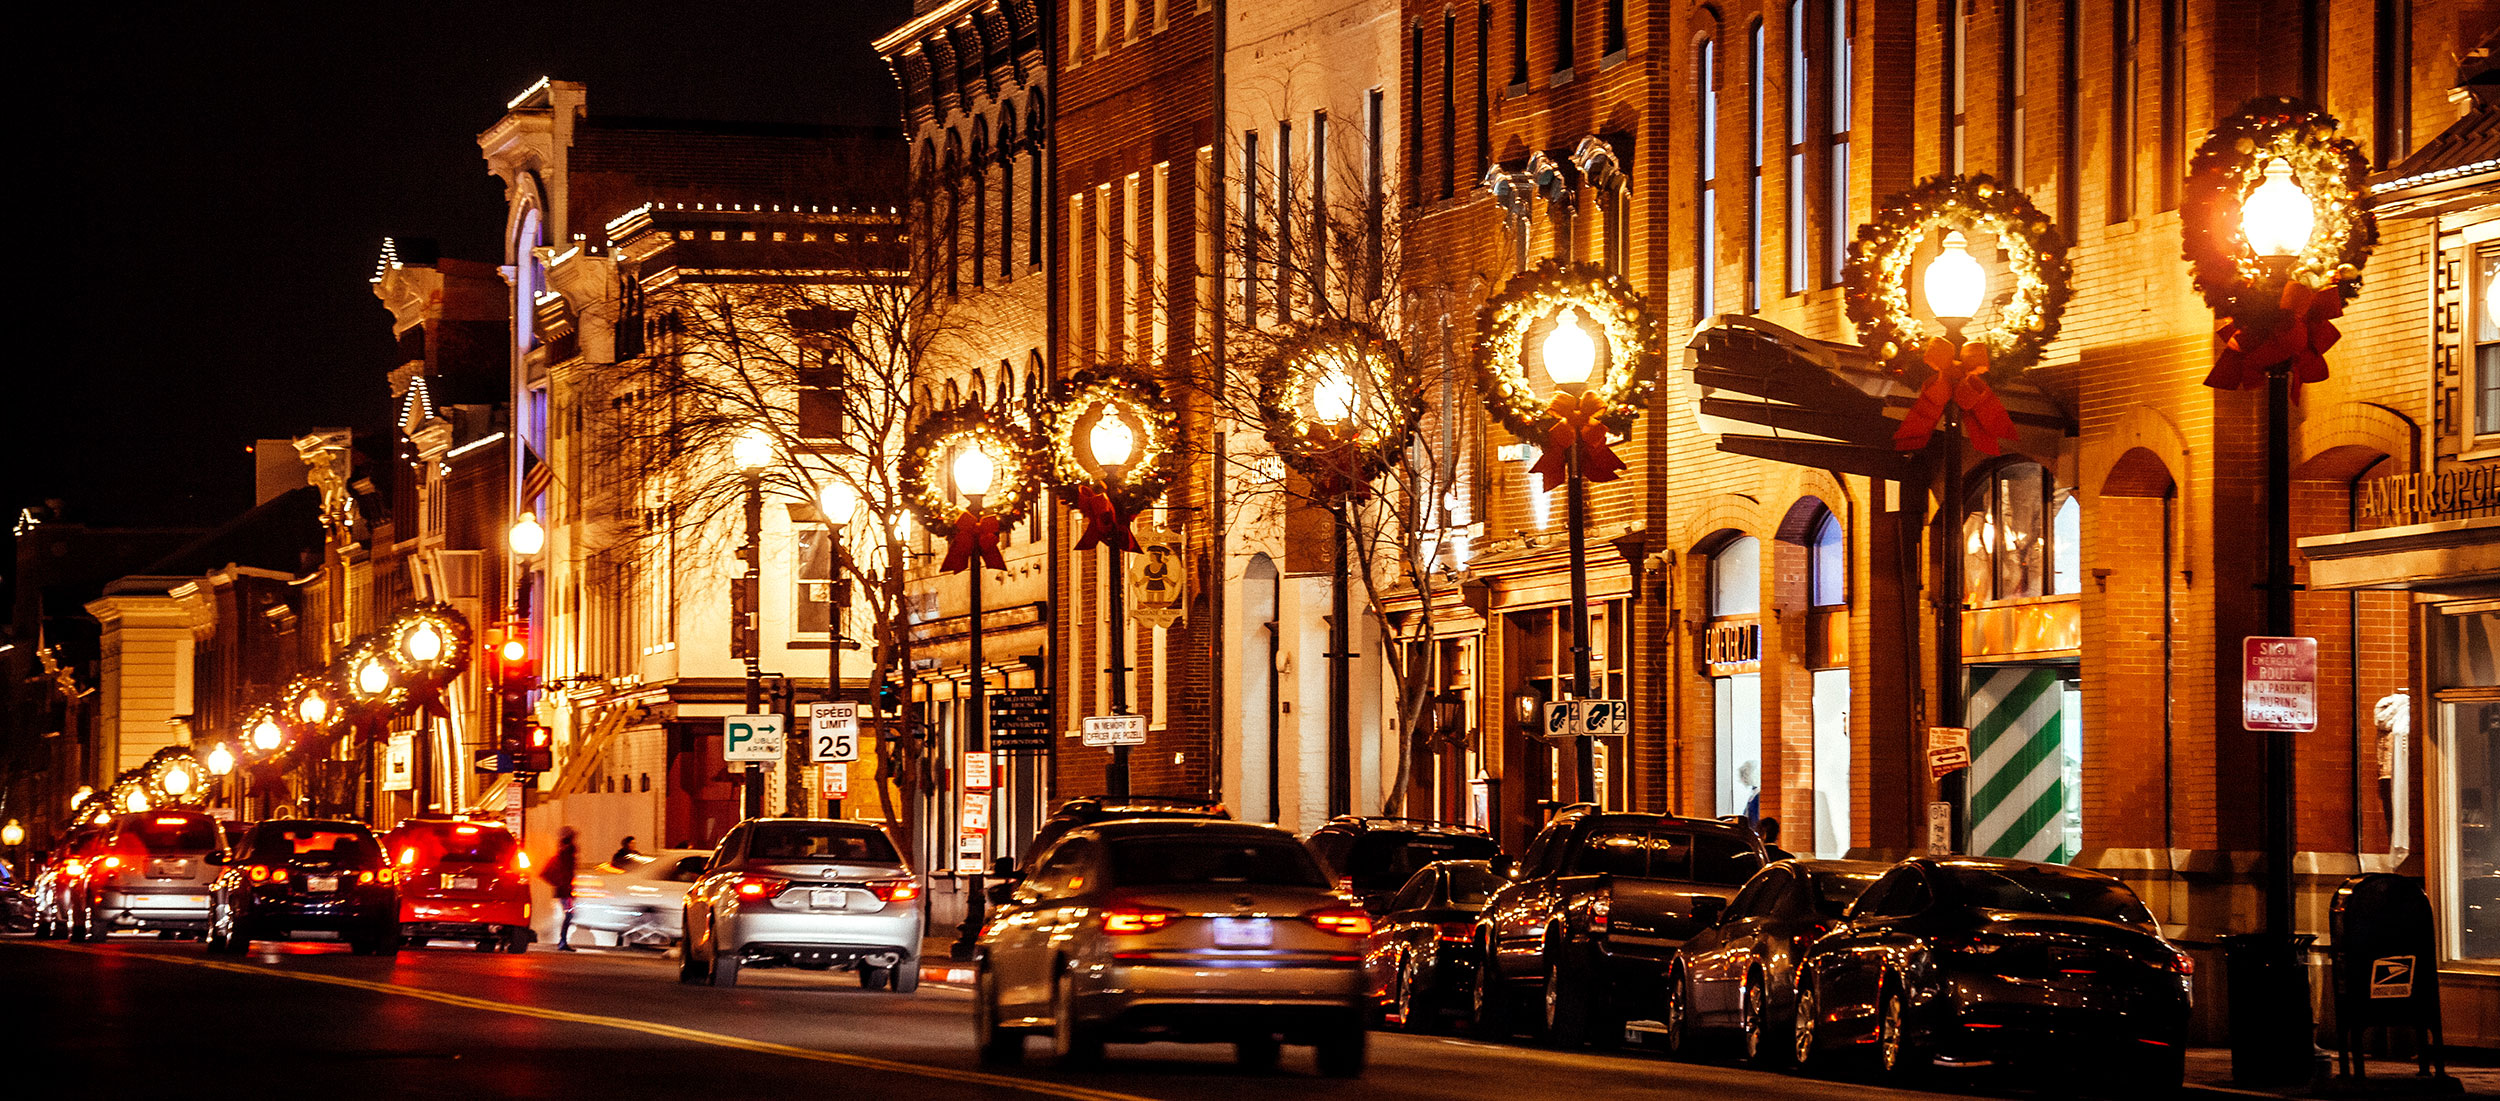 Street in Washington, D.C. decorated for the holidays